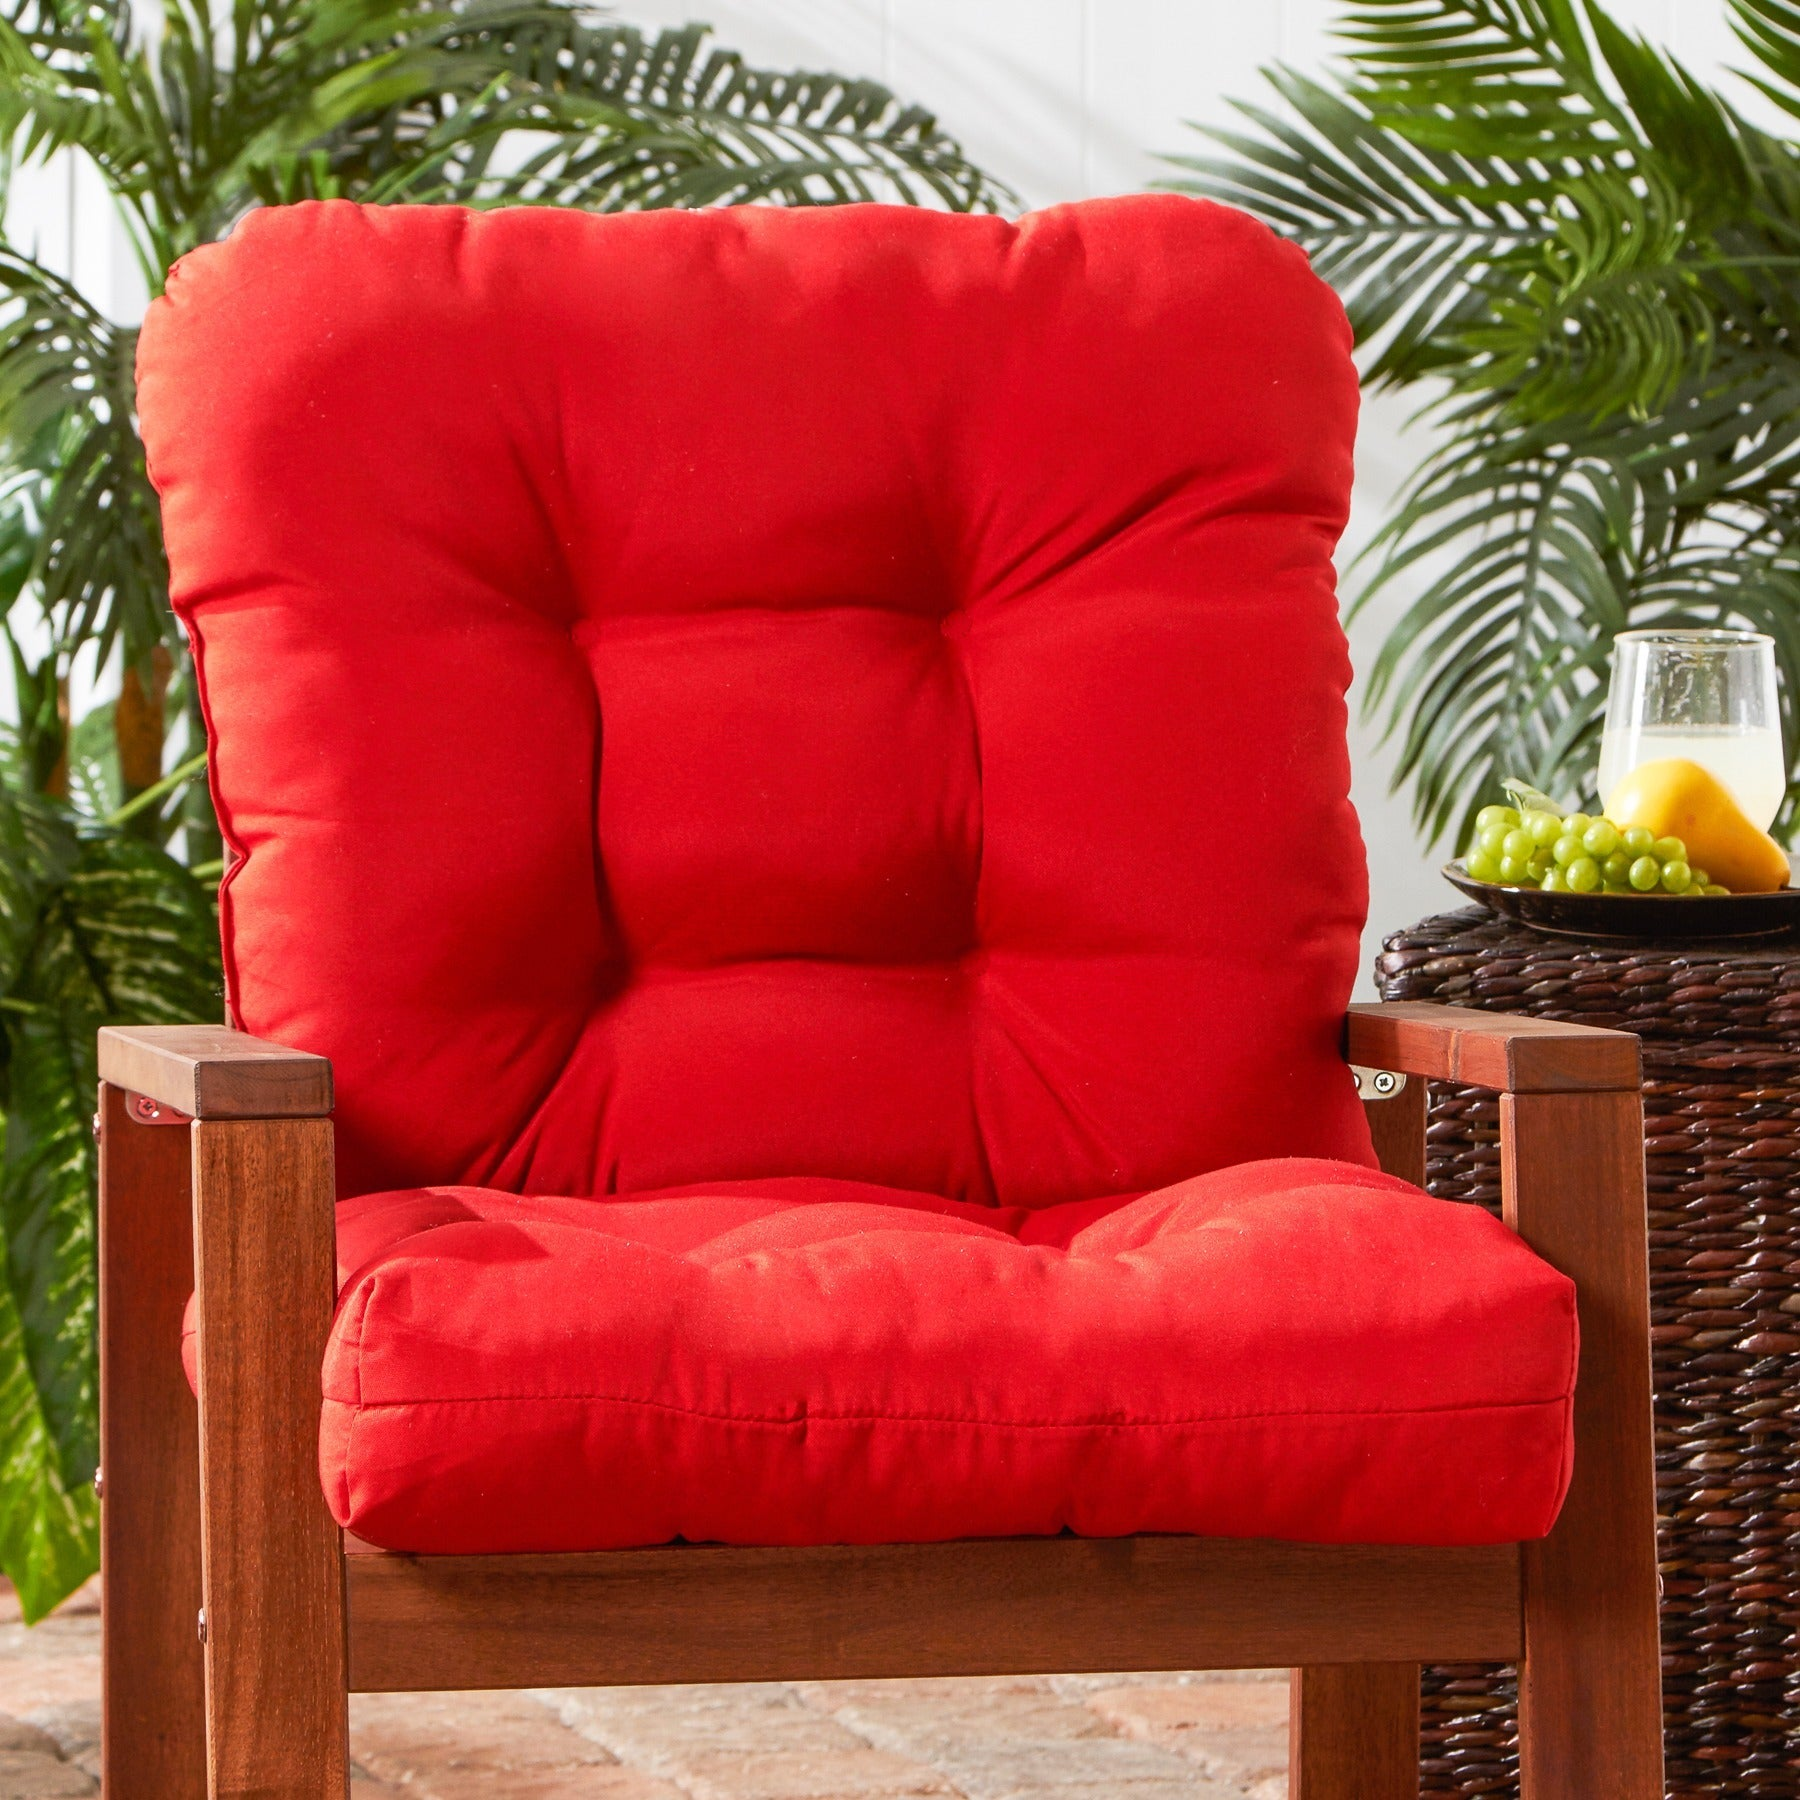 Shop Outdoor Salsa Red Seat Back Chair Cushion Free Shipping On